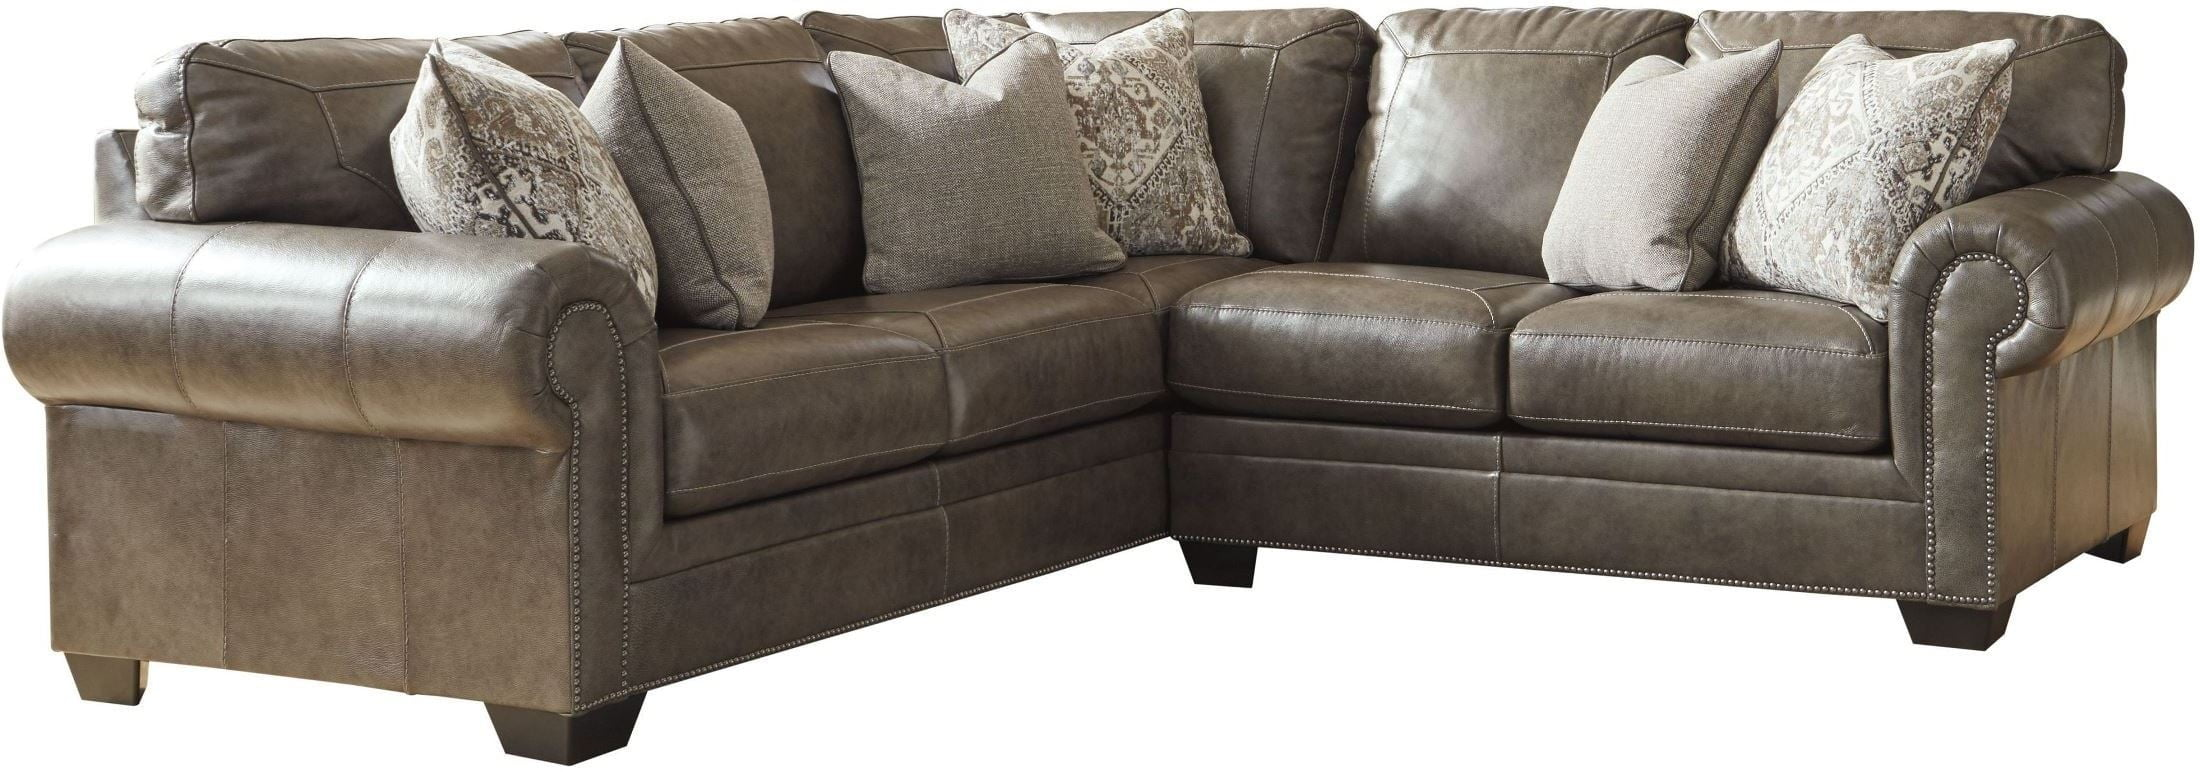 Magnificent Roleson Quarry Raf Sectional From Ashley Coleman Furniture Pdpeps Interior Chair Design Pdpepsorg